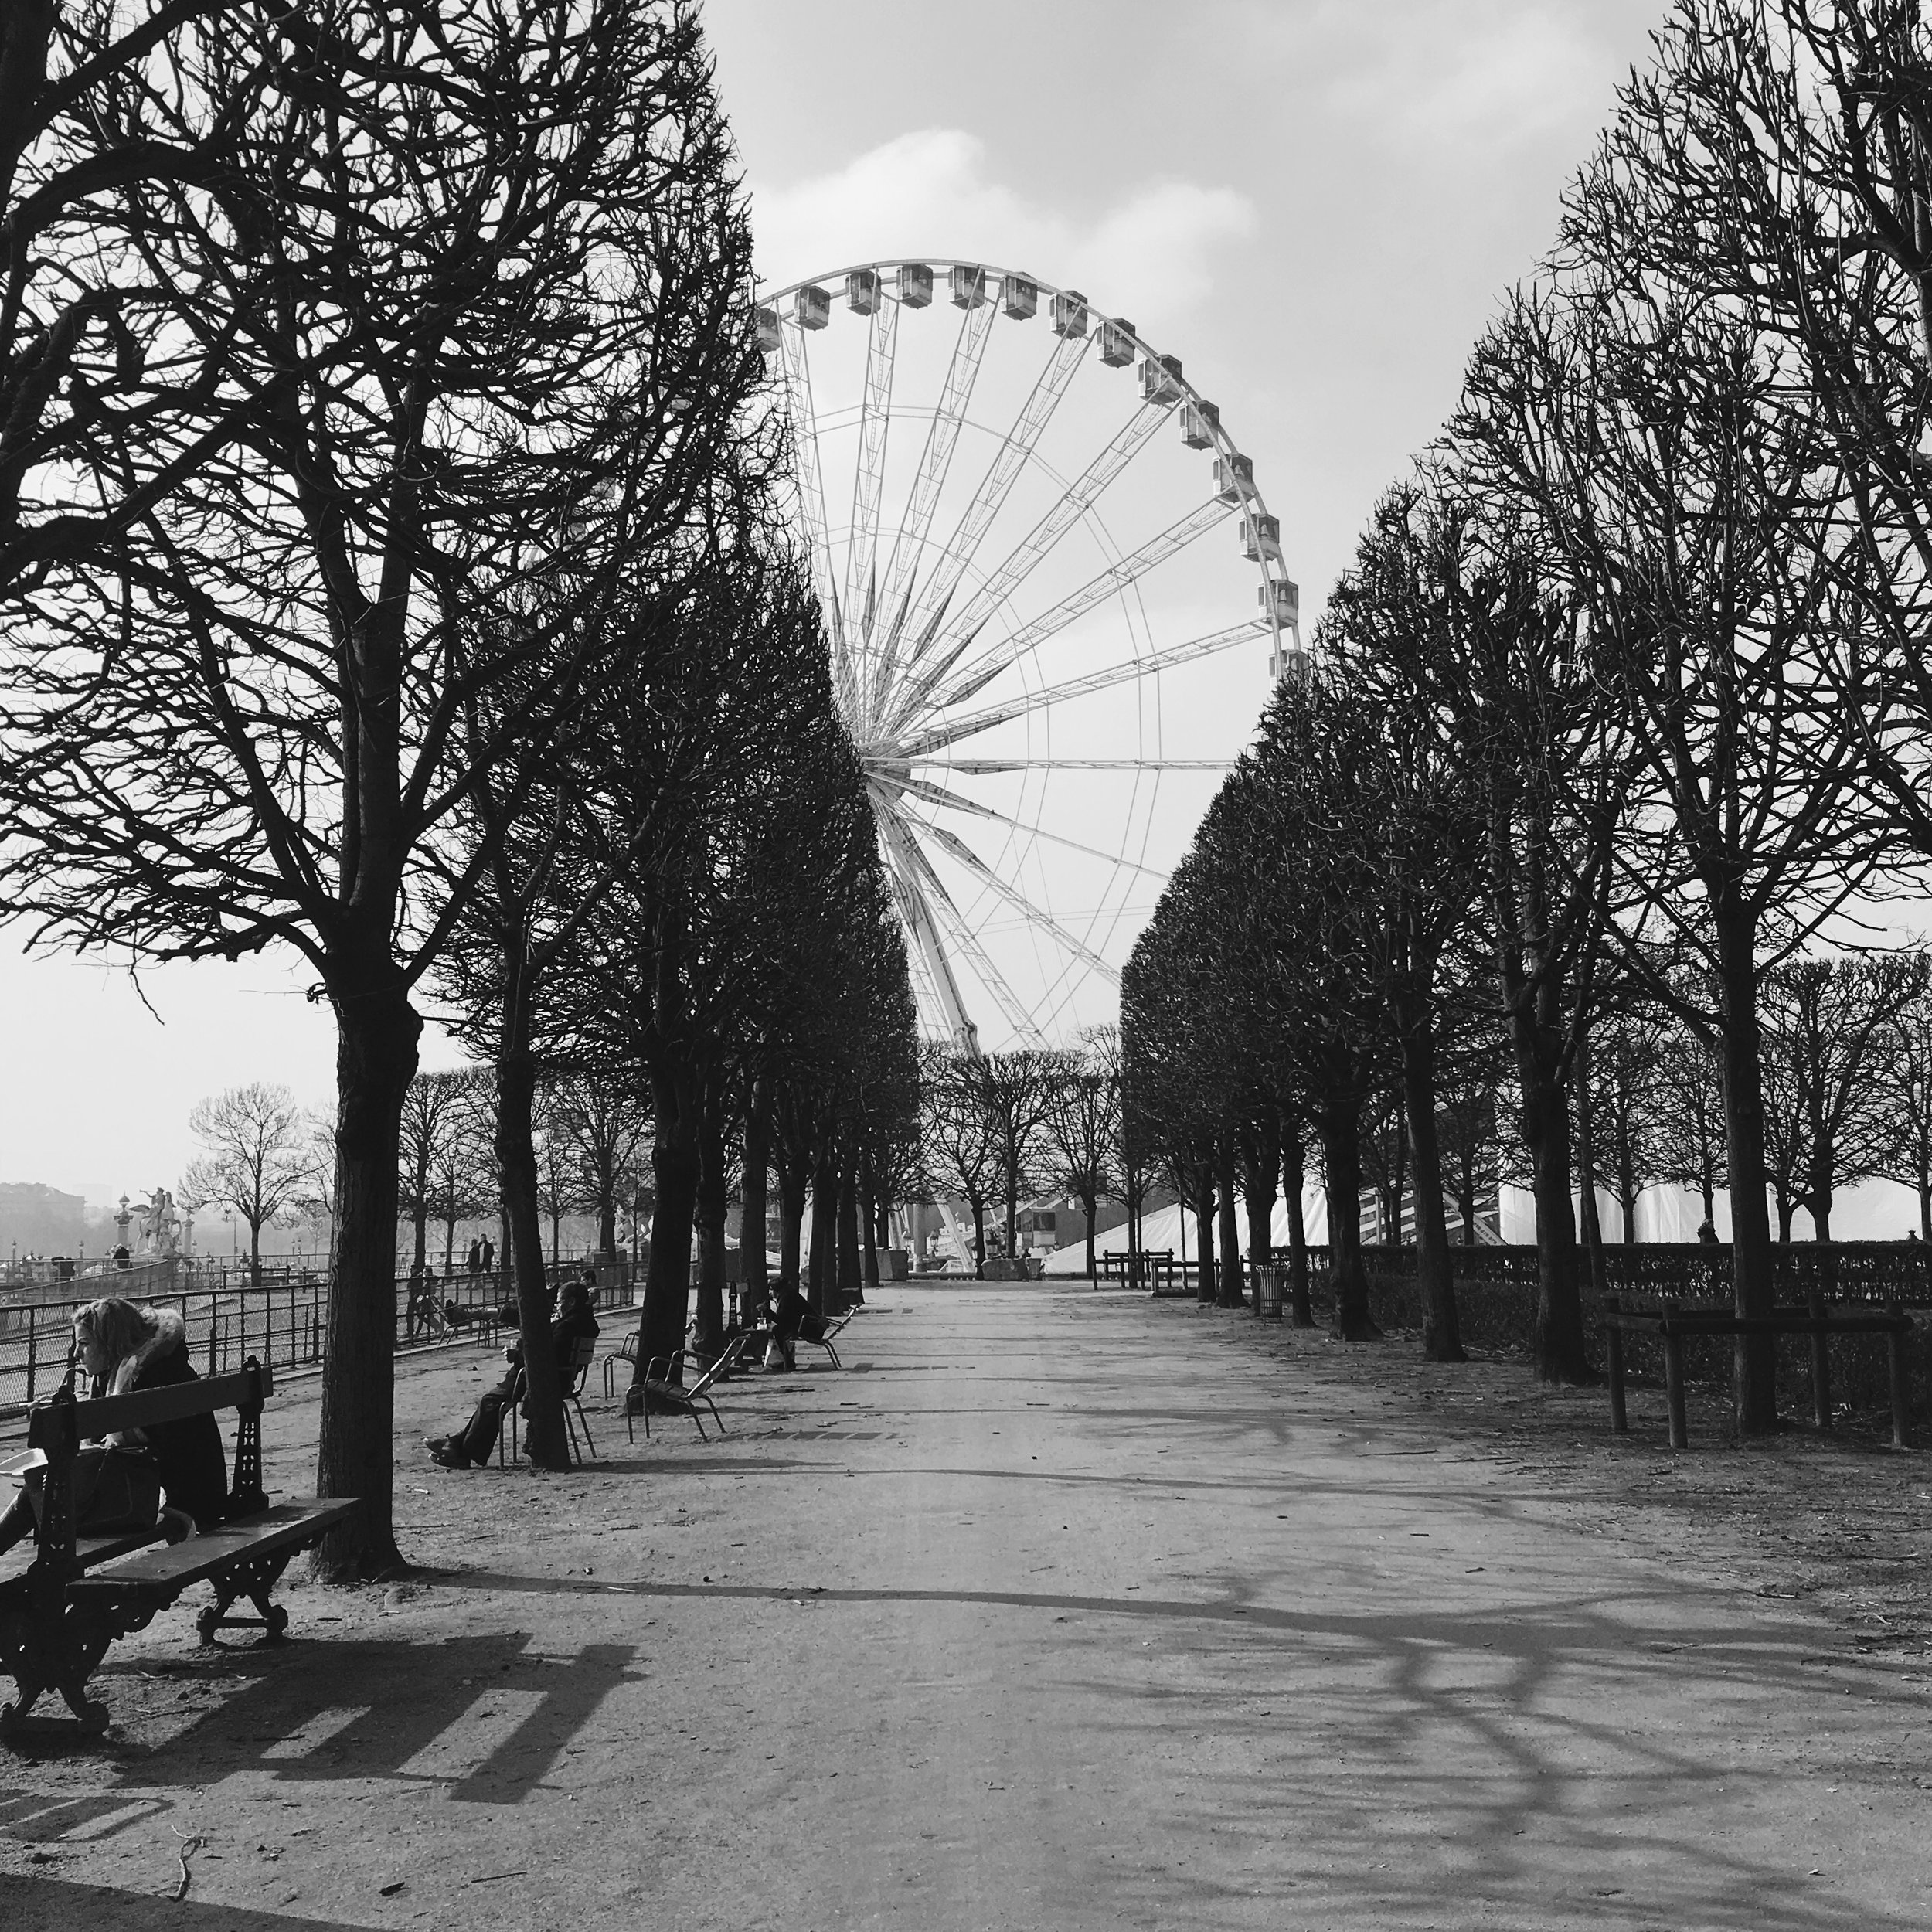 View of The Big Wheel at the Tuileries Gardens.